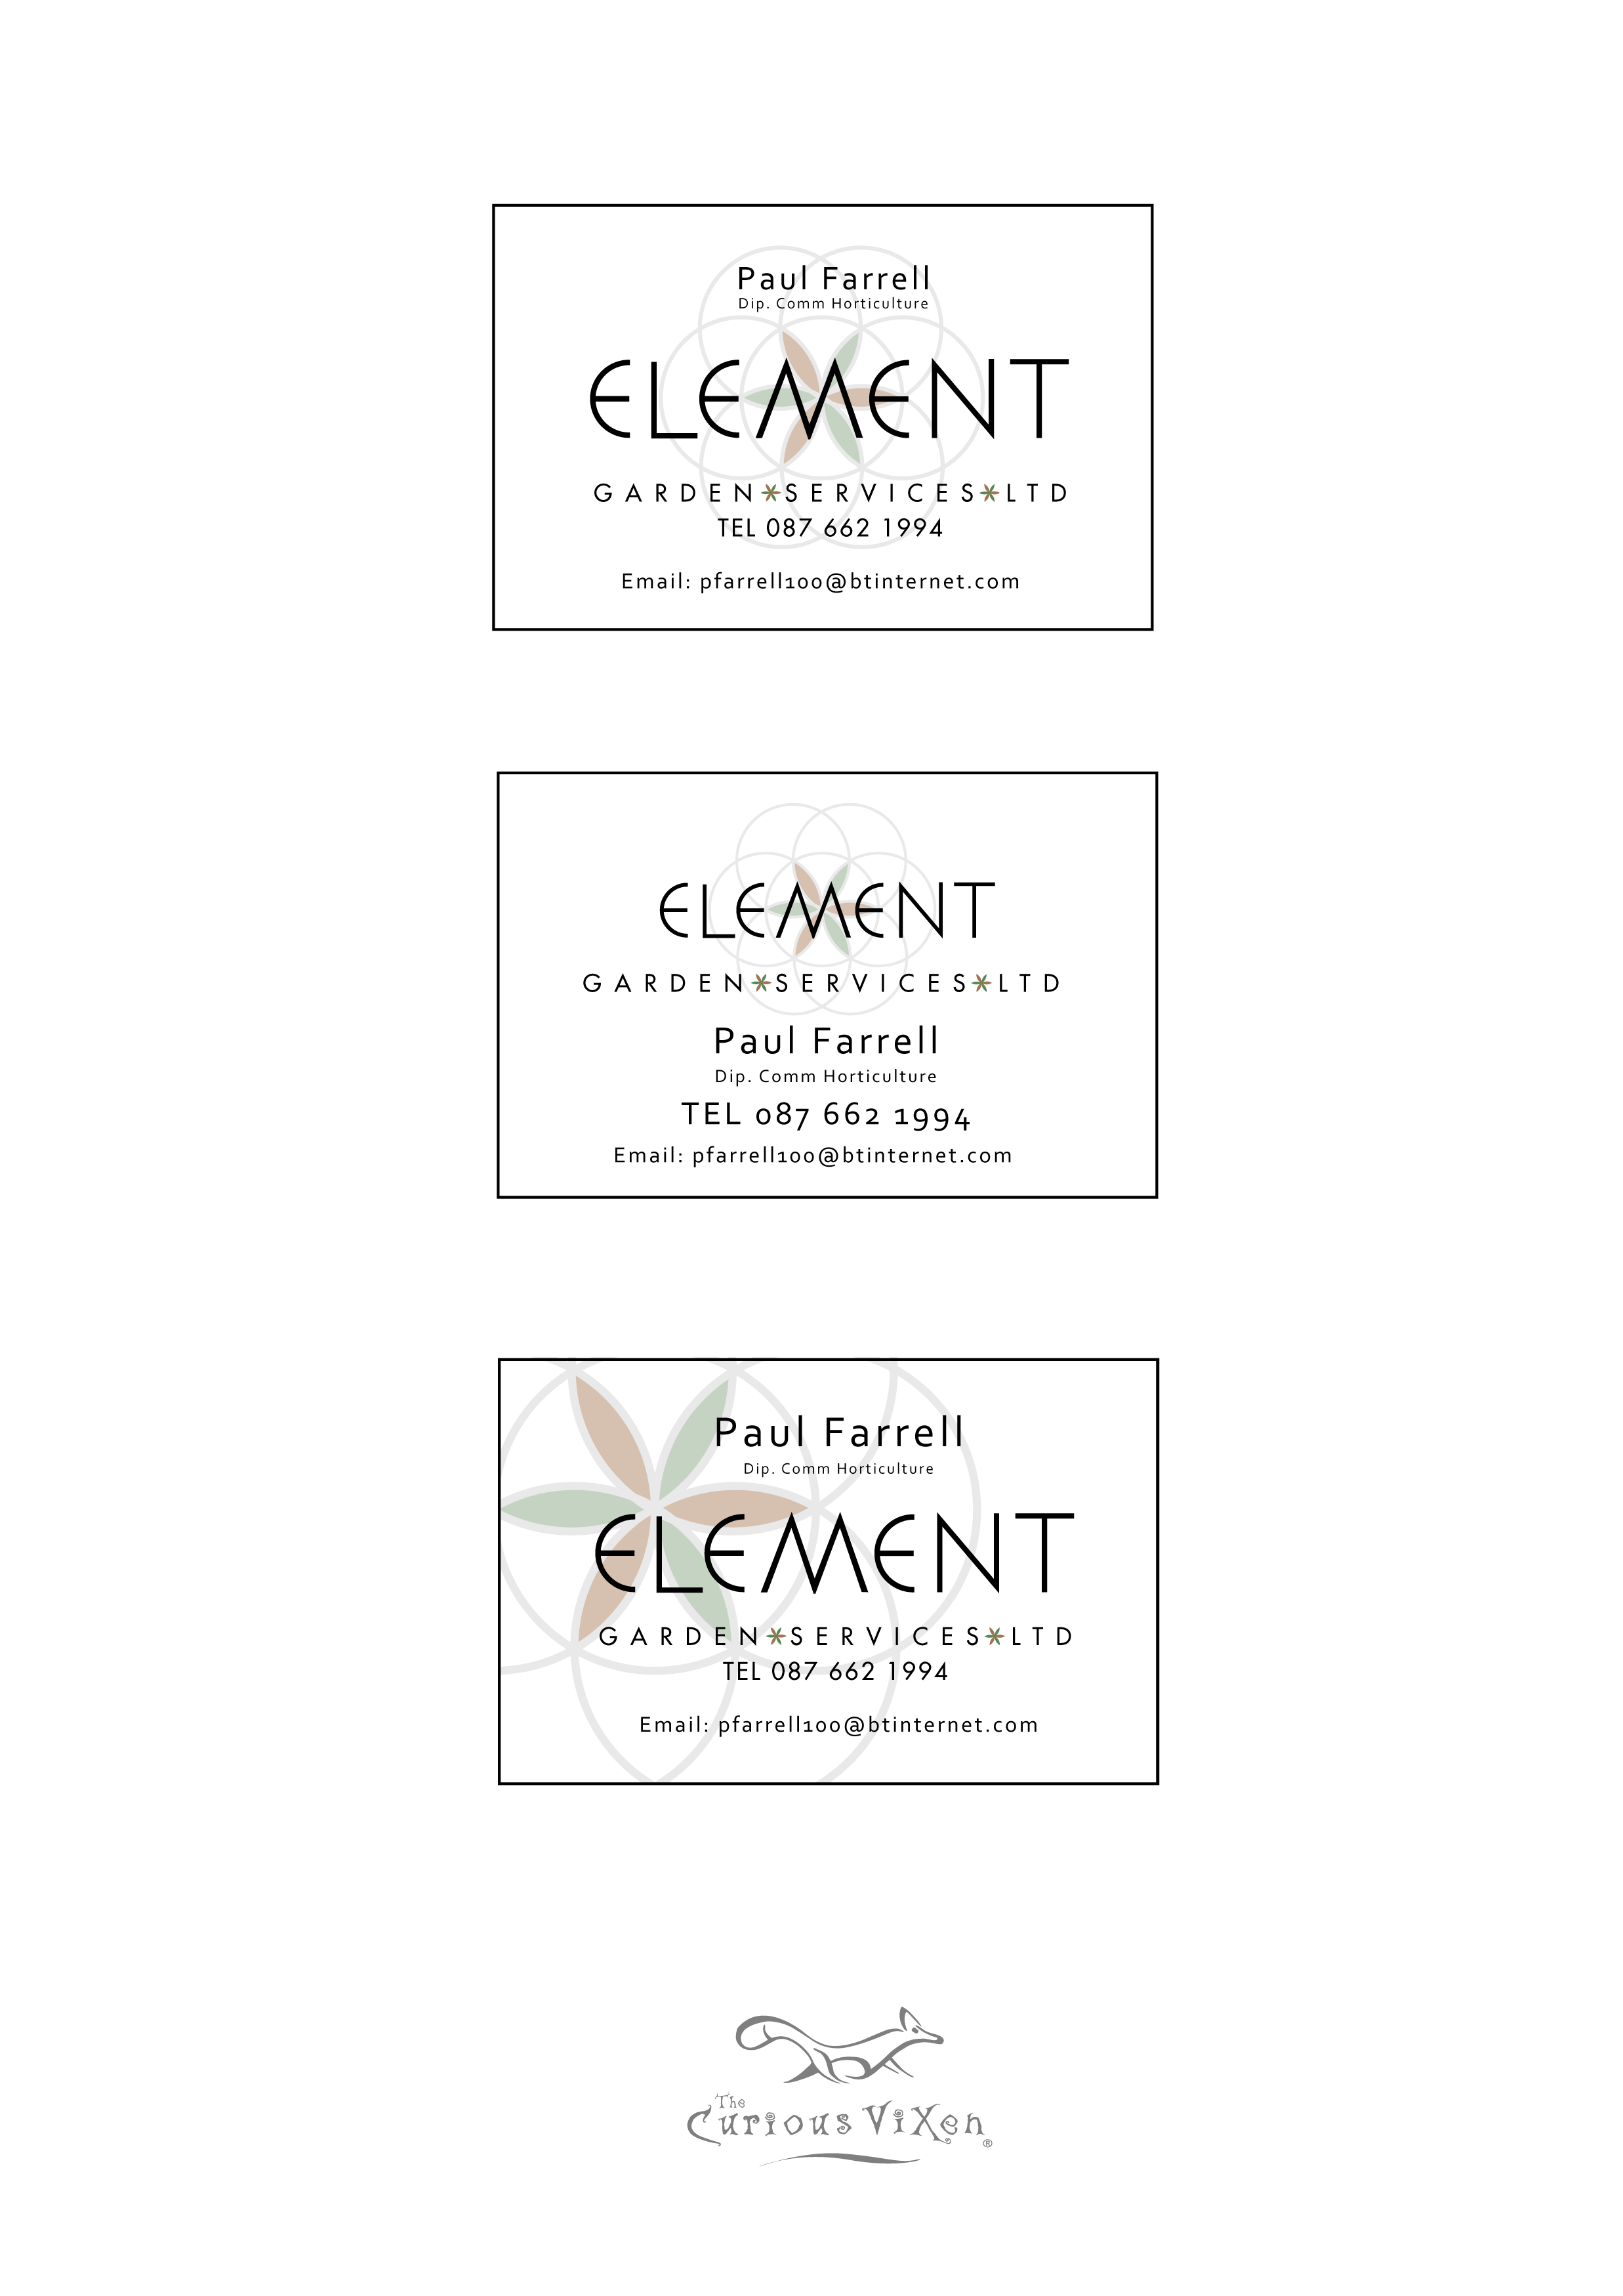 8. Business card options